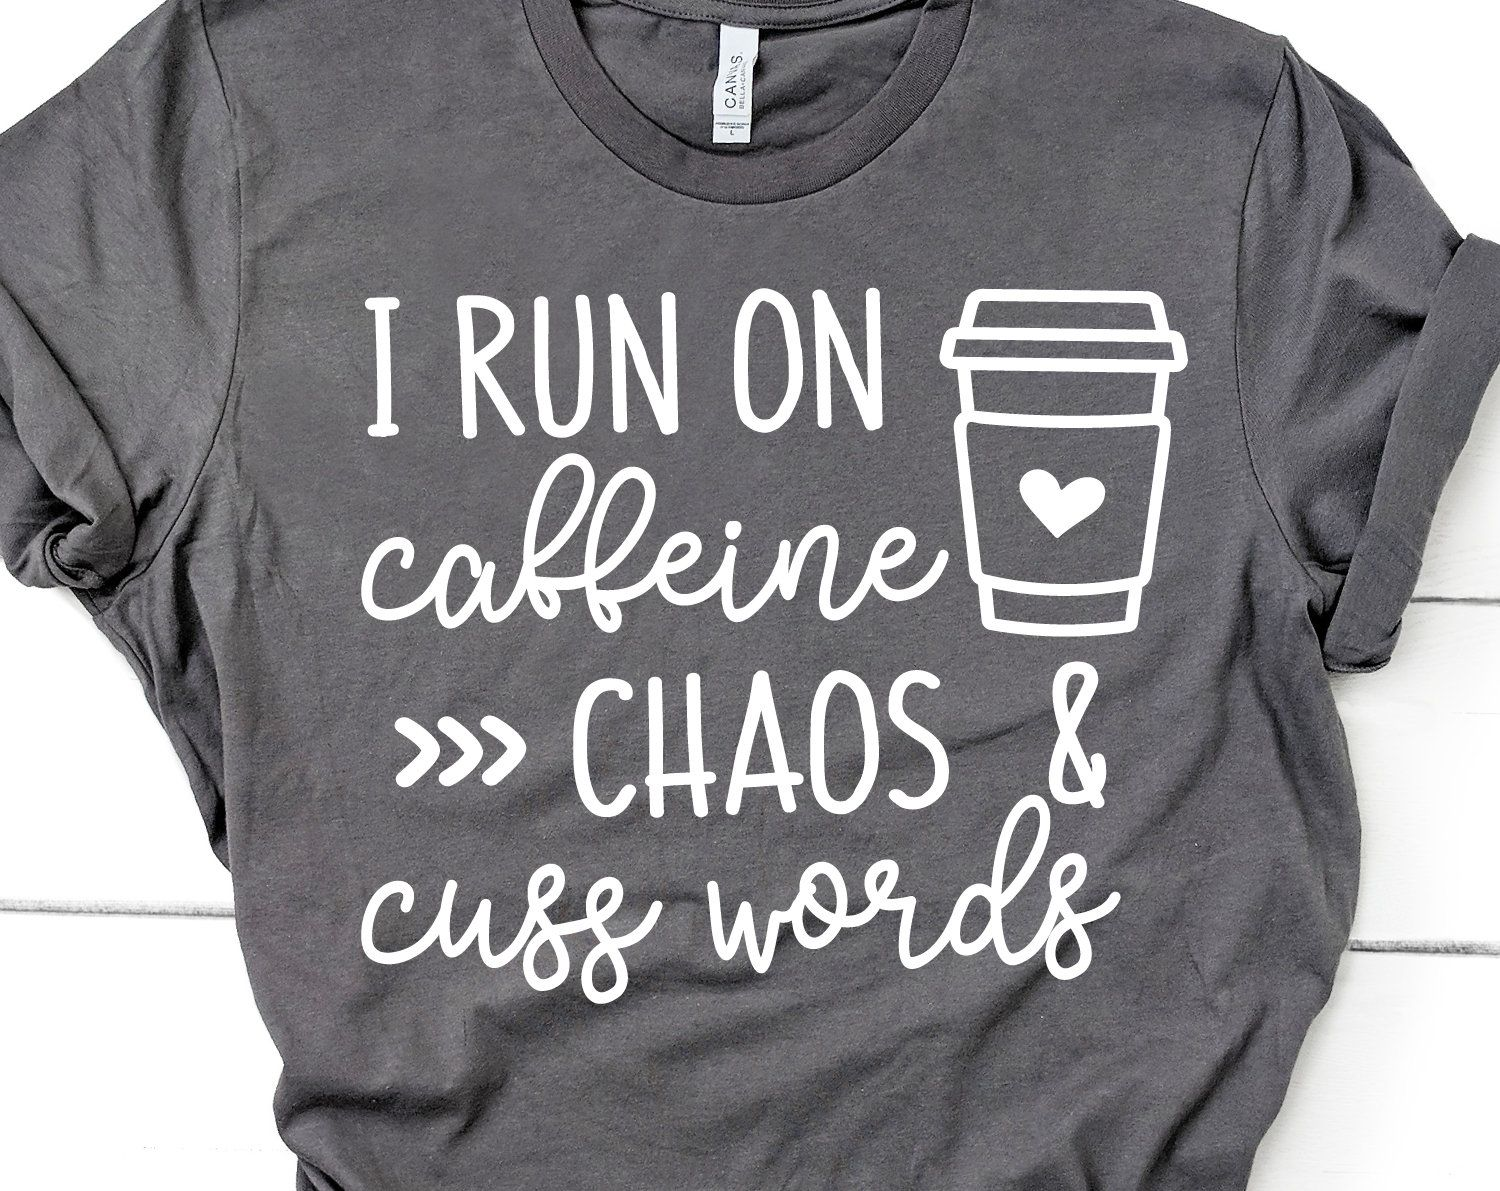 I Run On Caffeine Chaos And Cuss Words Svg Funny Coffee Svg Mom Svg Mom Life Shirt Svg Cussing Svg File Mom Life Shirt Cricut Projects Vinyl Vinyl Quotes